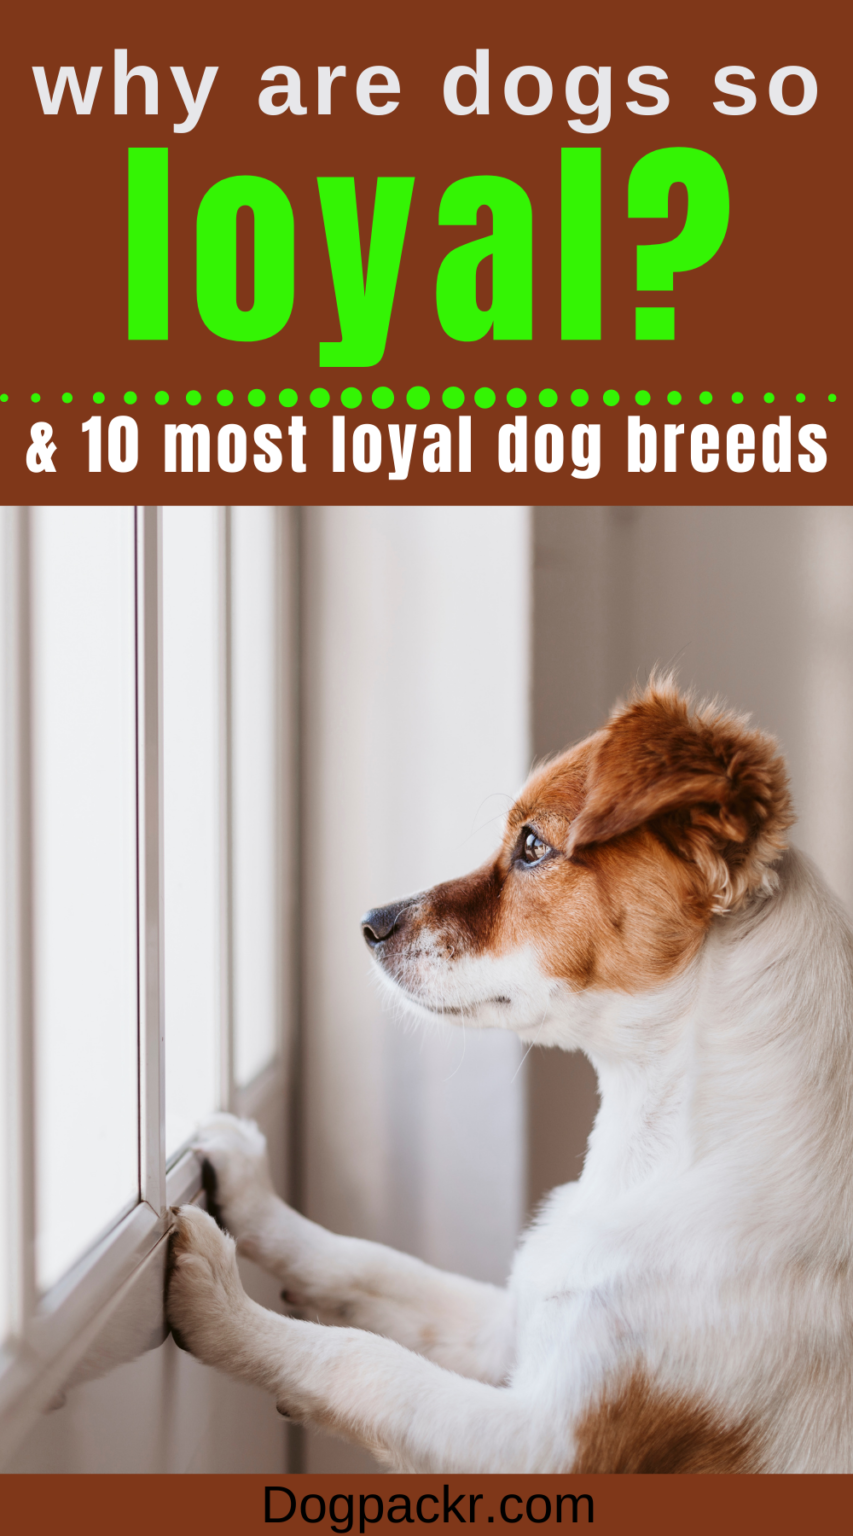 Why Are Dogs So Loyal?